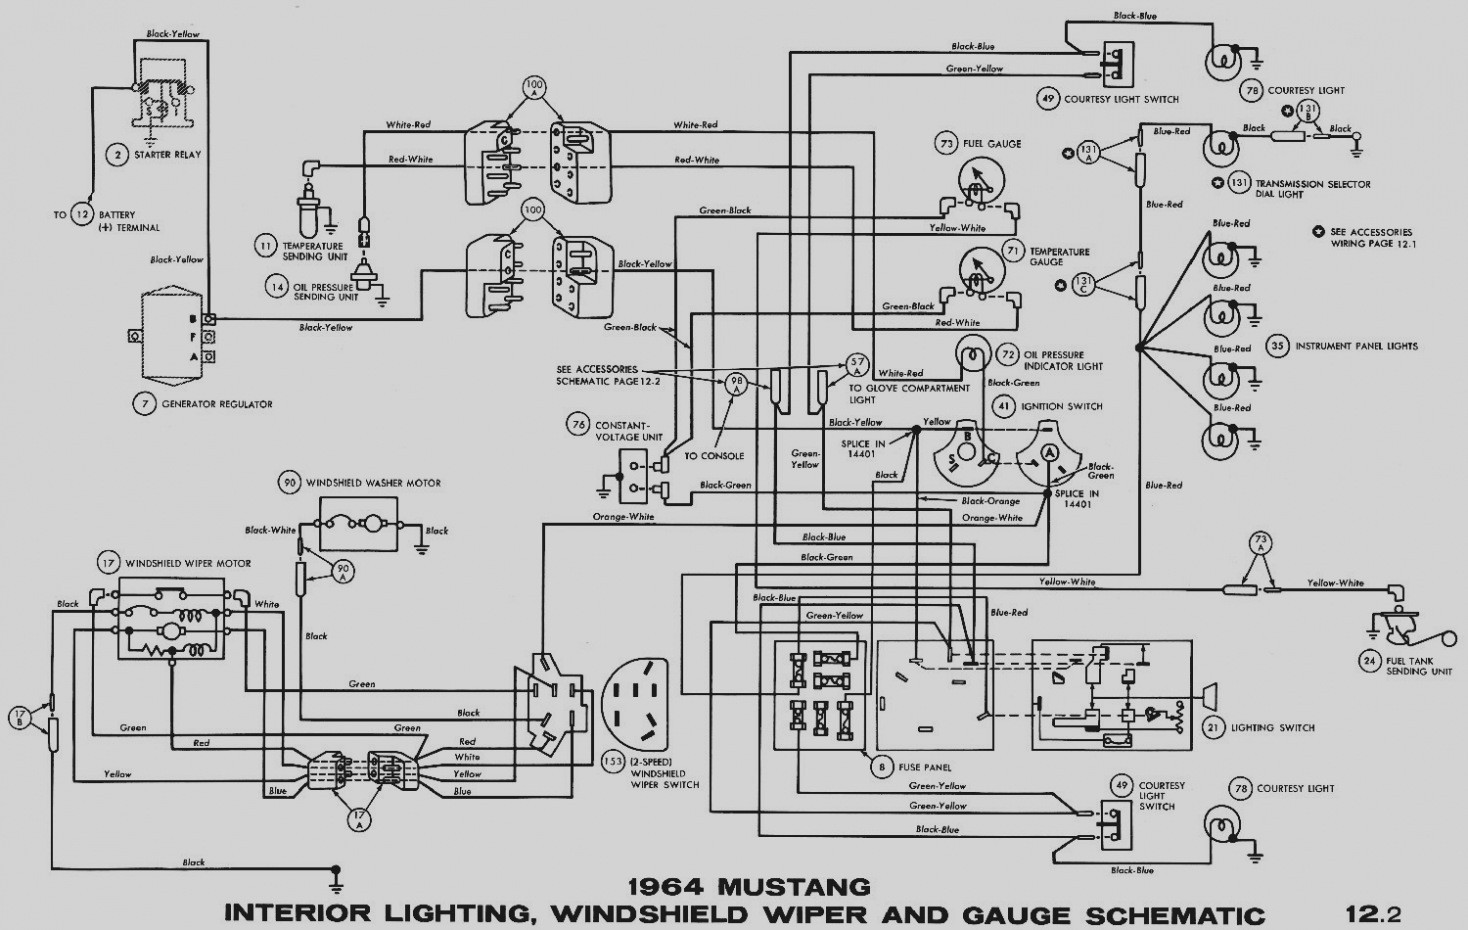 66 mustang heater wiring diagram schematic wiring library  66 mustang wiring diagram schematic #9